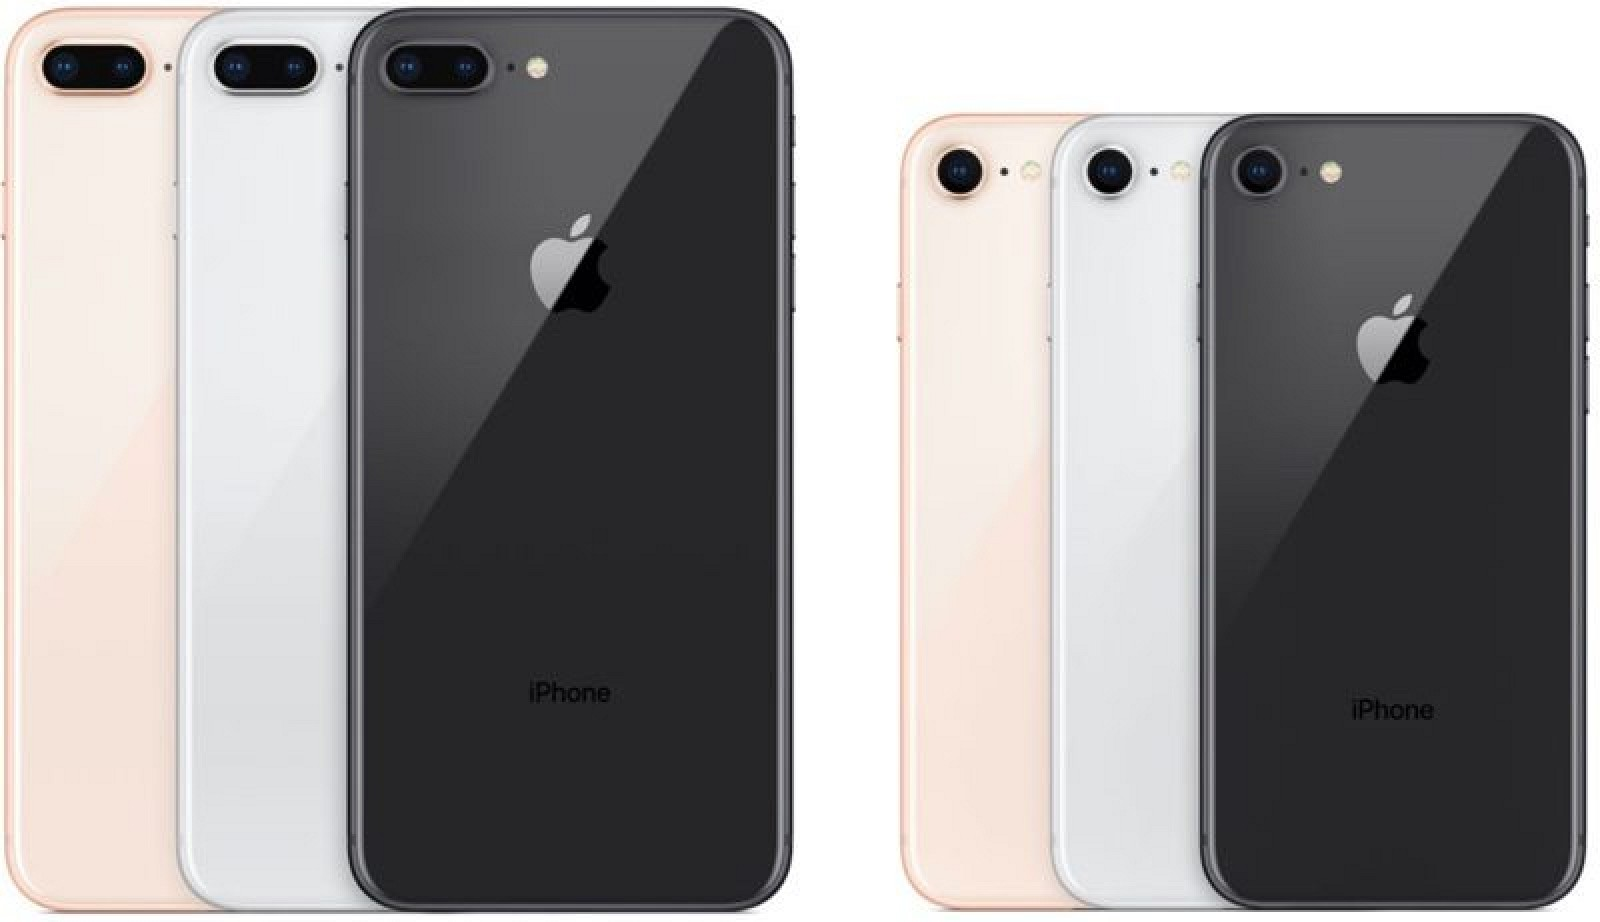 Everything On the iPhone 8 and iPhone 8 Plus. All variant ...